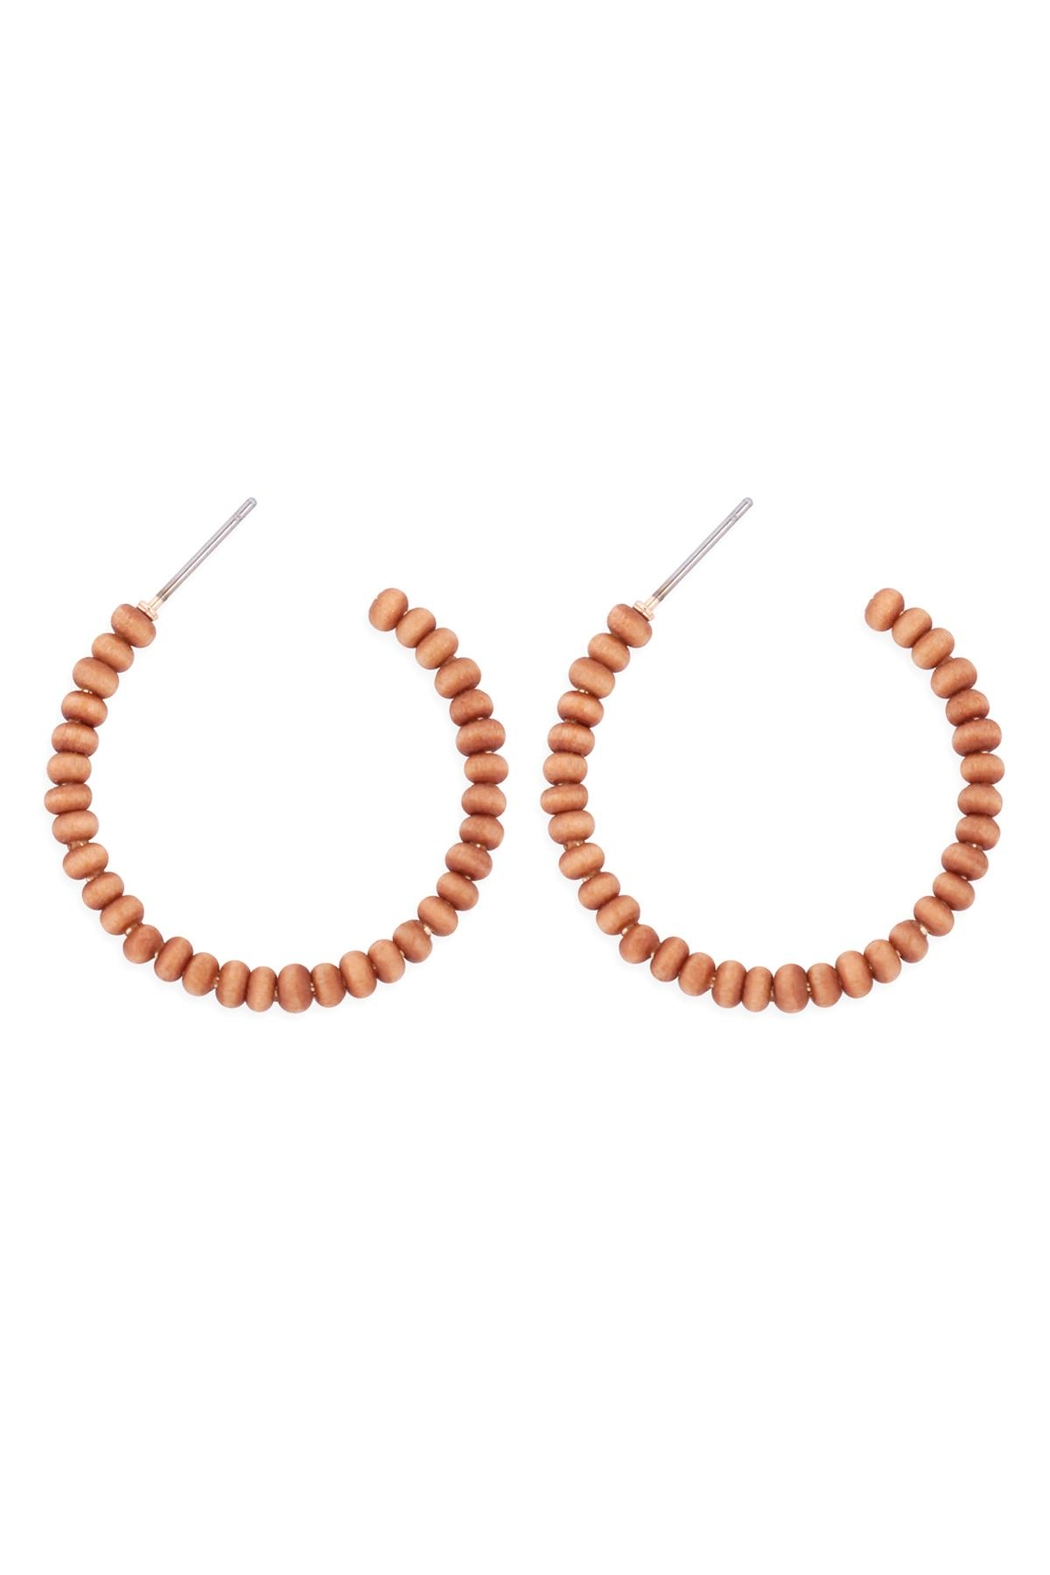 Riah Fashion Round-Shape-Beaded-Wood-Hoop-Earrings - Front Cropped Image